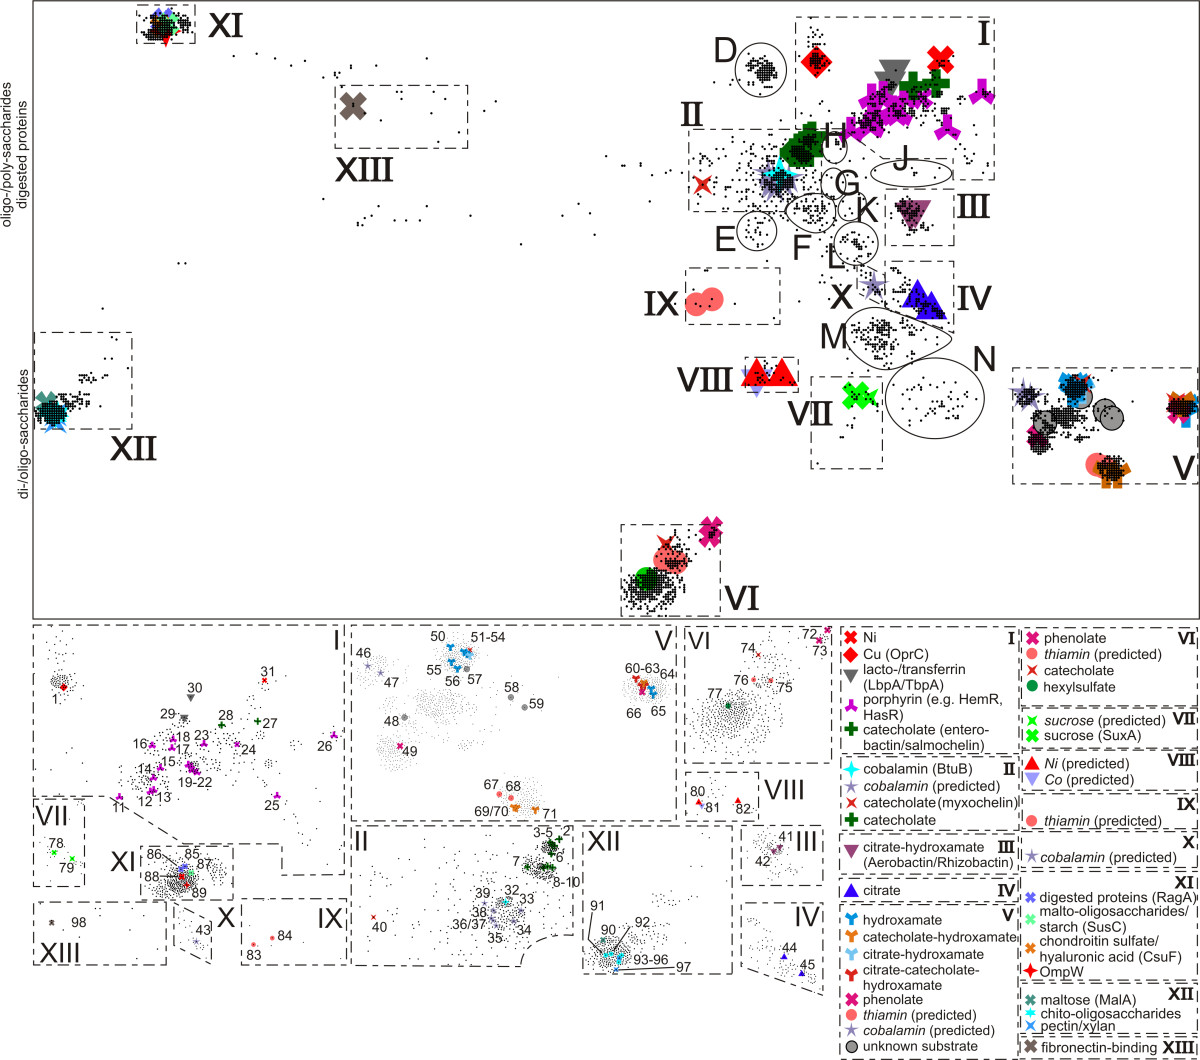 http://static-content.springer.com/image/art%3A10.1186%2F1741-7007-7-68/MediaObjects/12915_2009_Article_276_Fig2_HTML.jpg